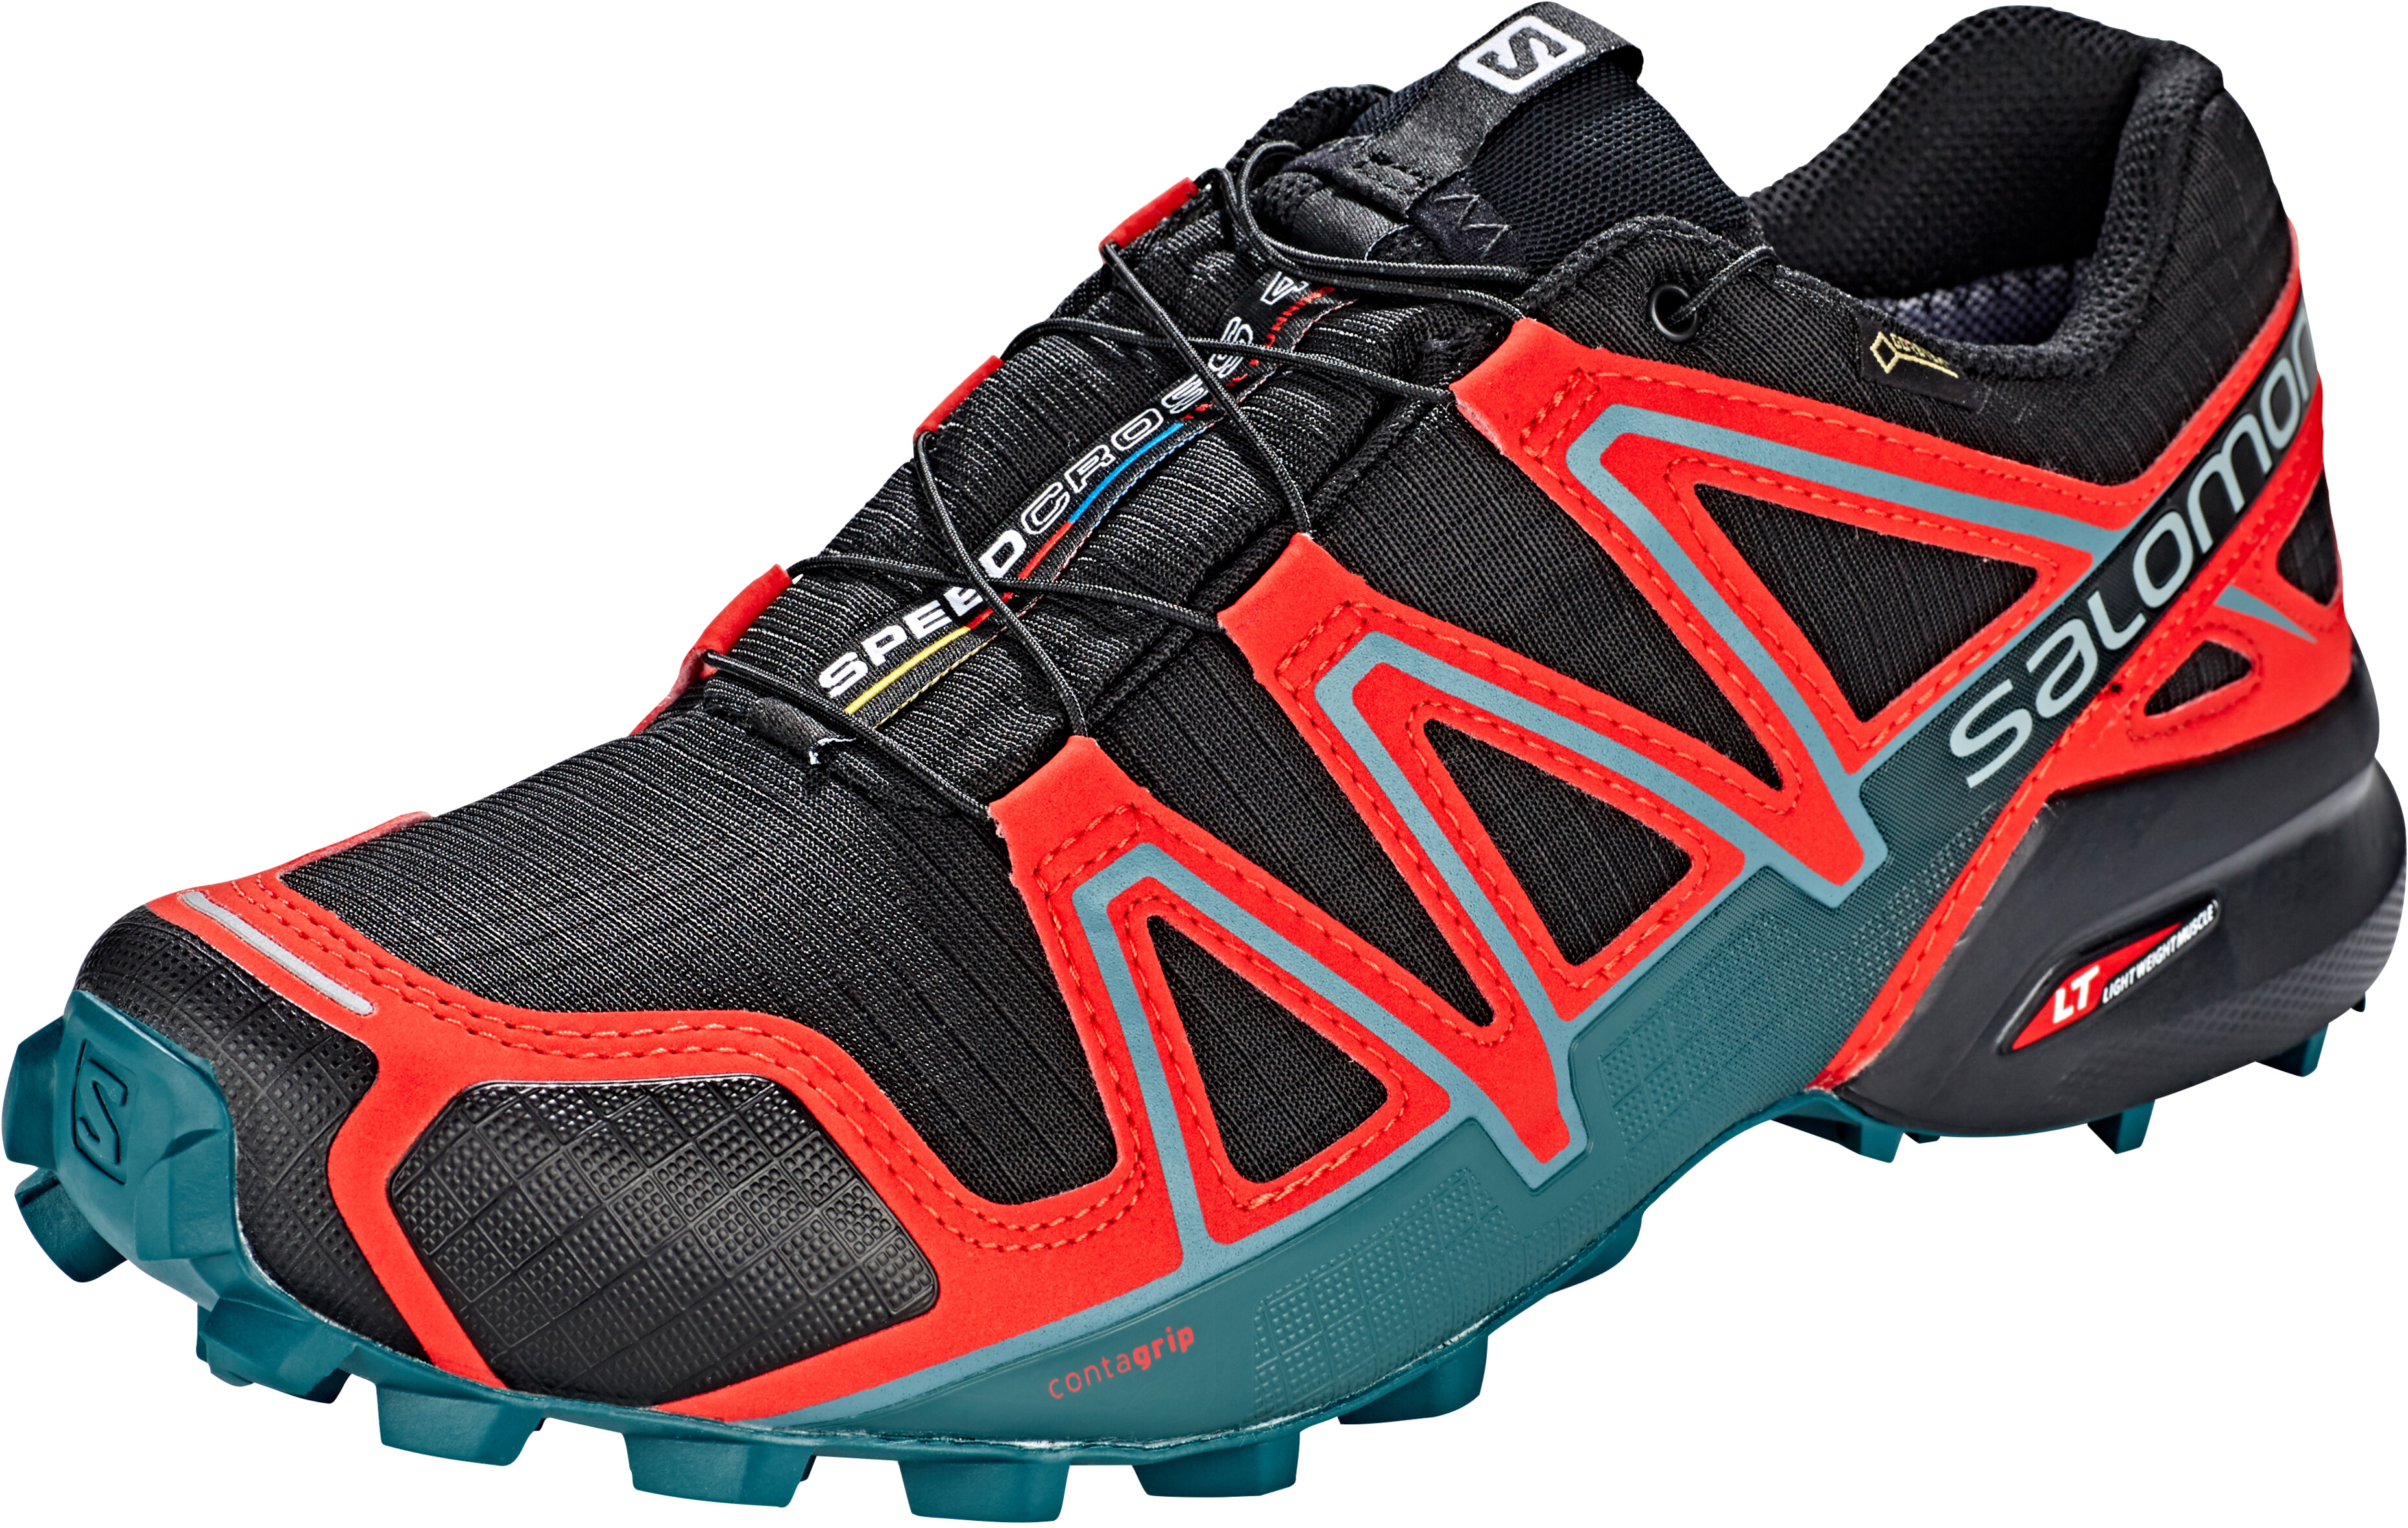 newest 036f6 5389b Salomon Speedcross 4 GTX - Chaussures running Homme - rouge noir